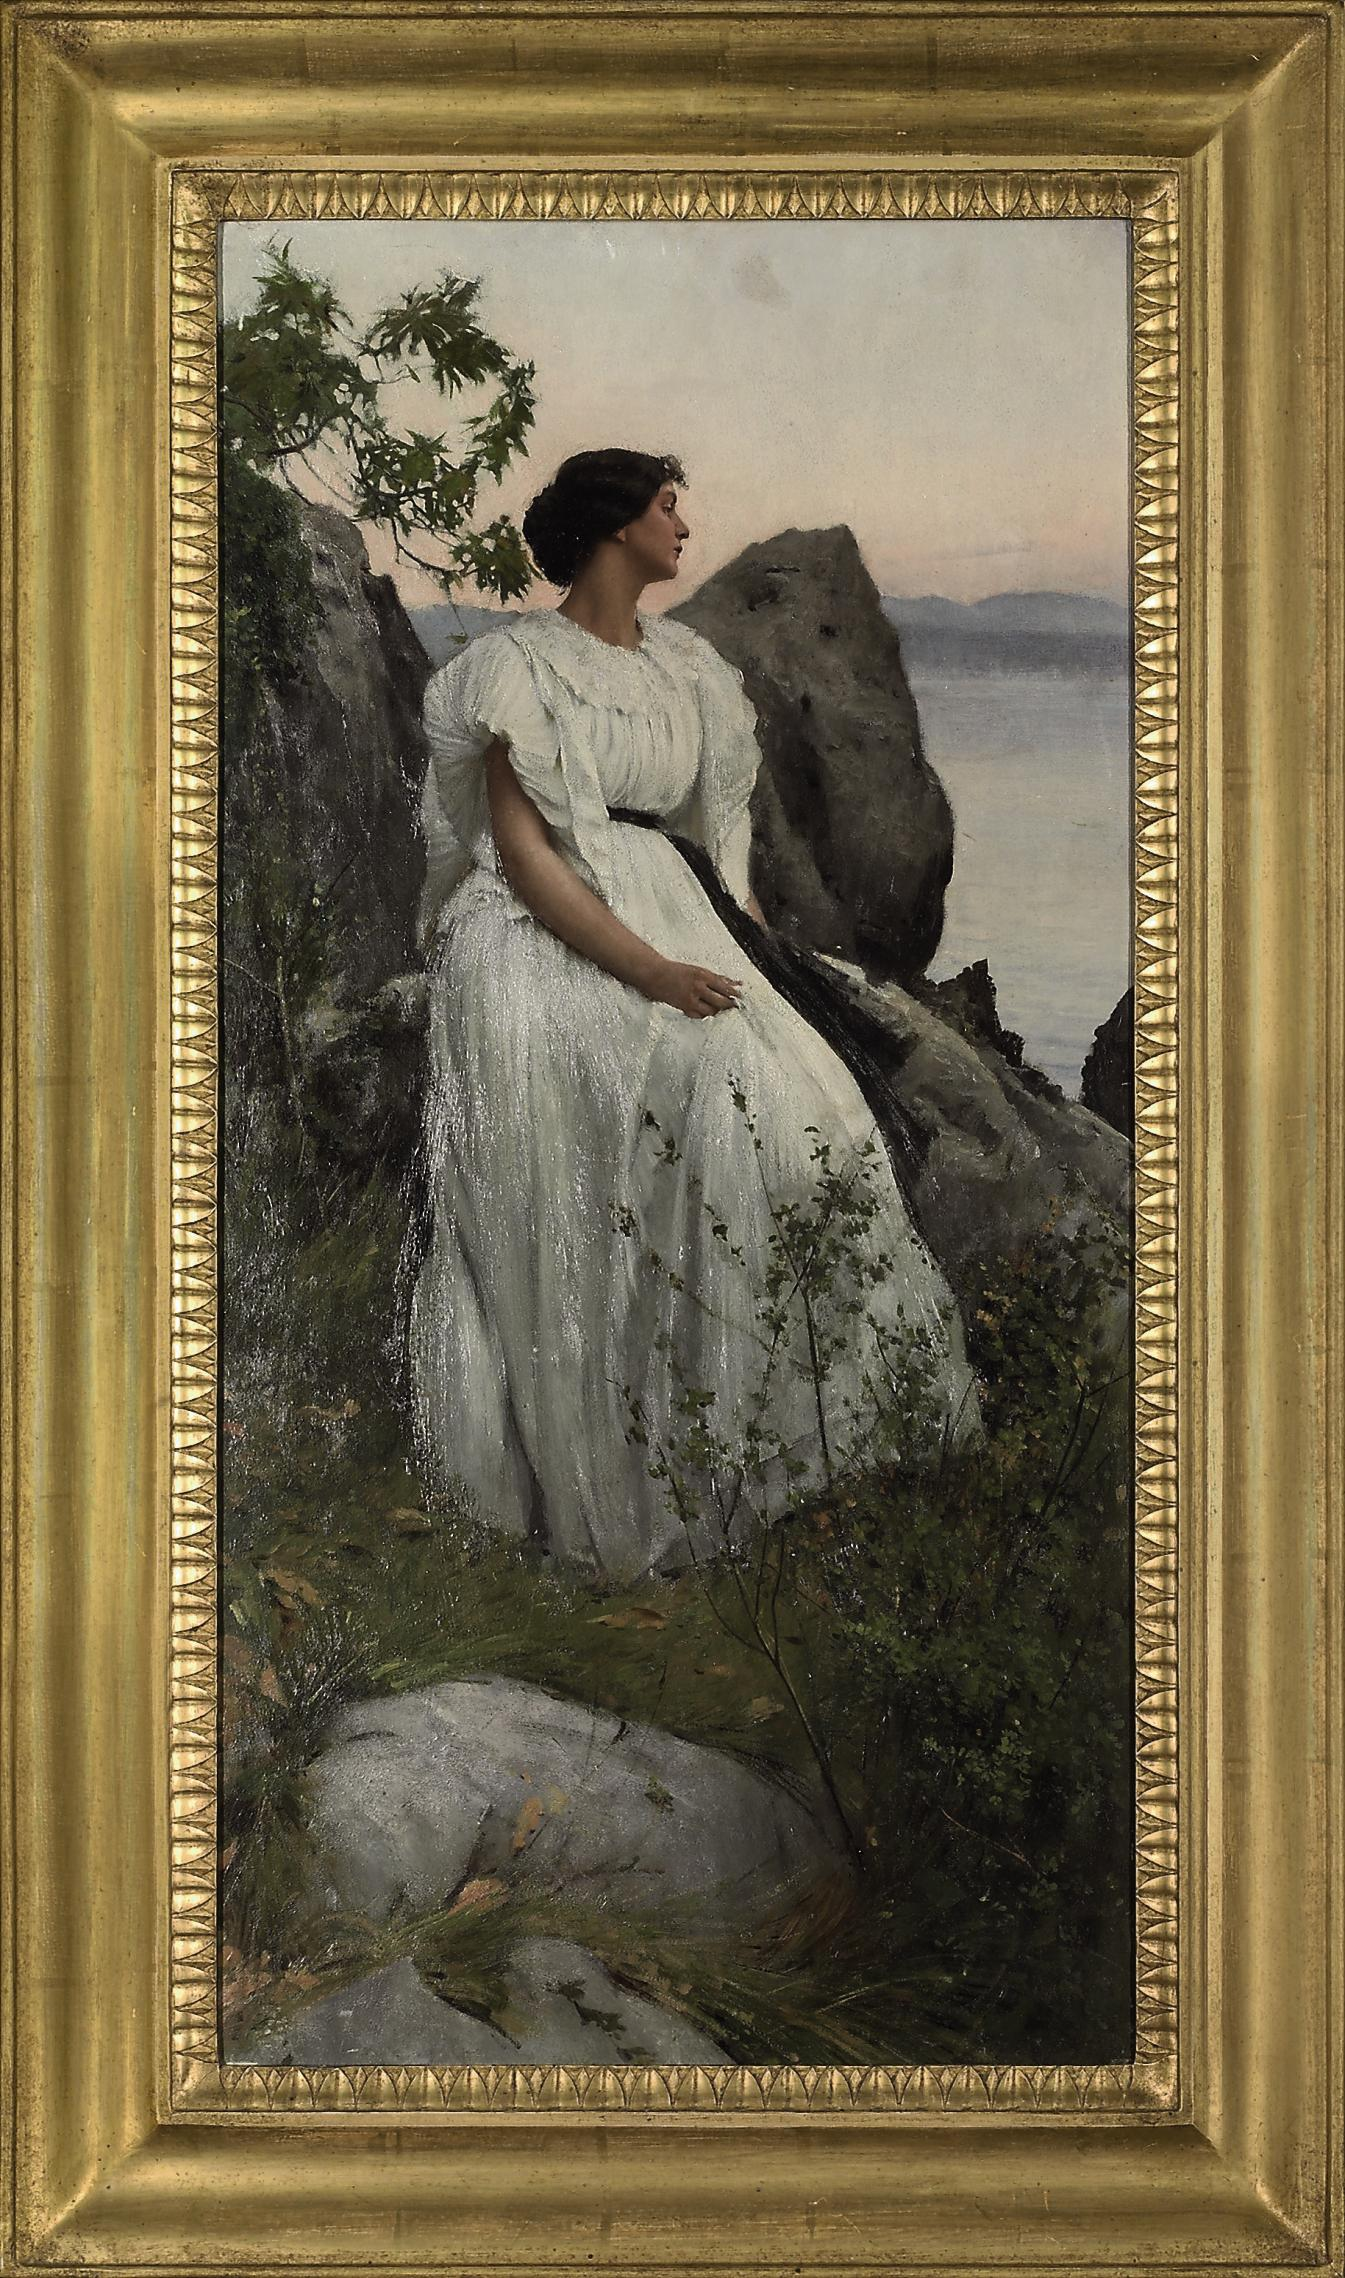 Lady in white at a lakeside